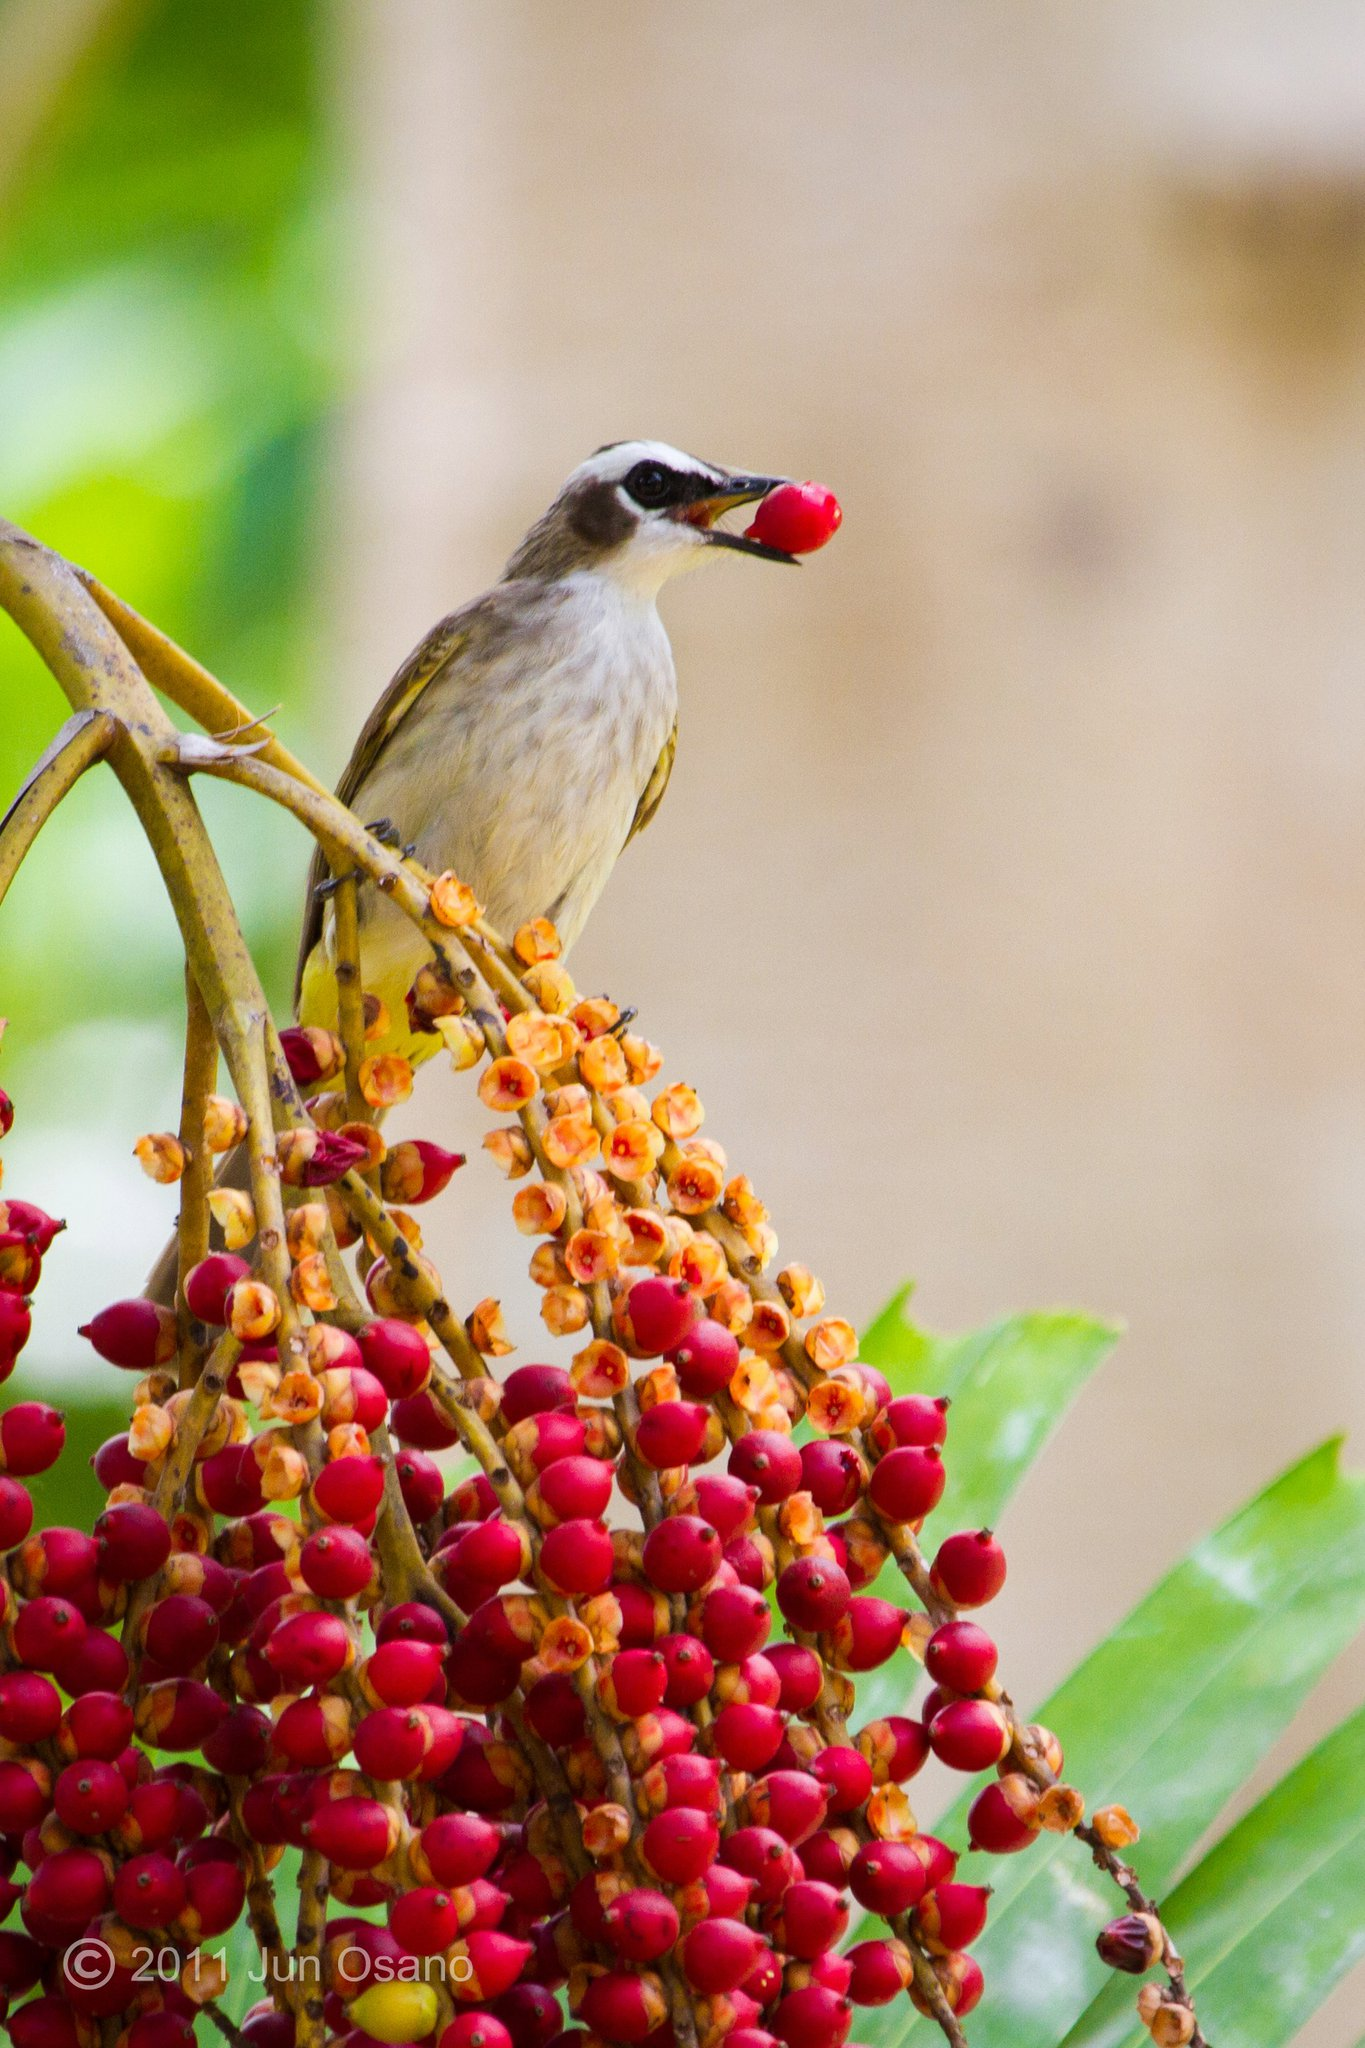 YVBs like feeding on ripe berries! Photo by Jun Osano.